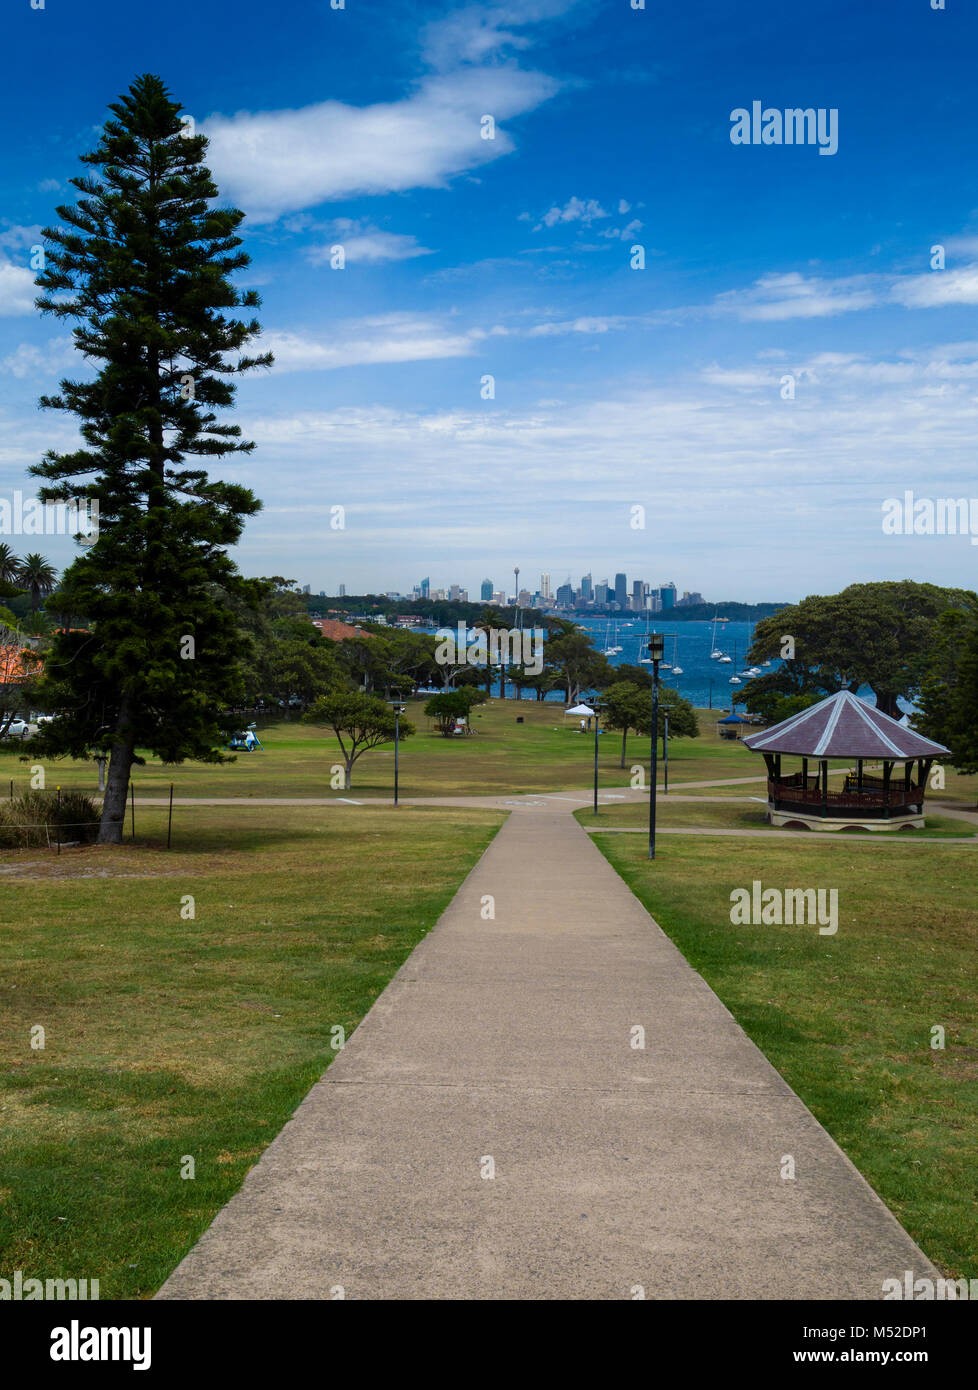 Pathway in Robertson Park, Watsons Bay, Sydney Harbour, New South Wales, Australia - Stock Image